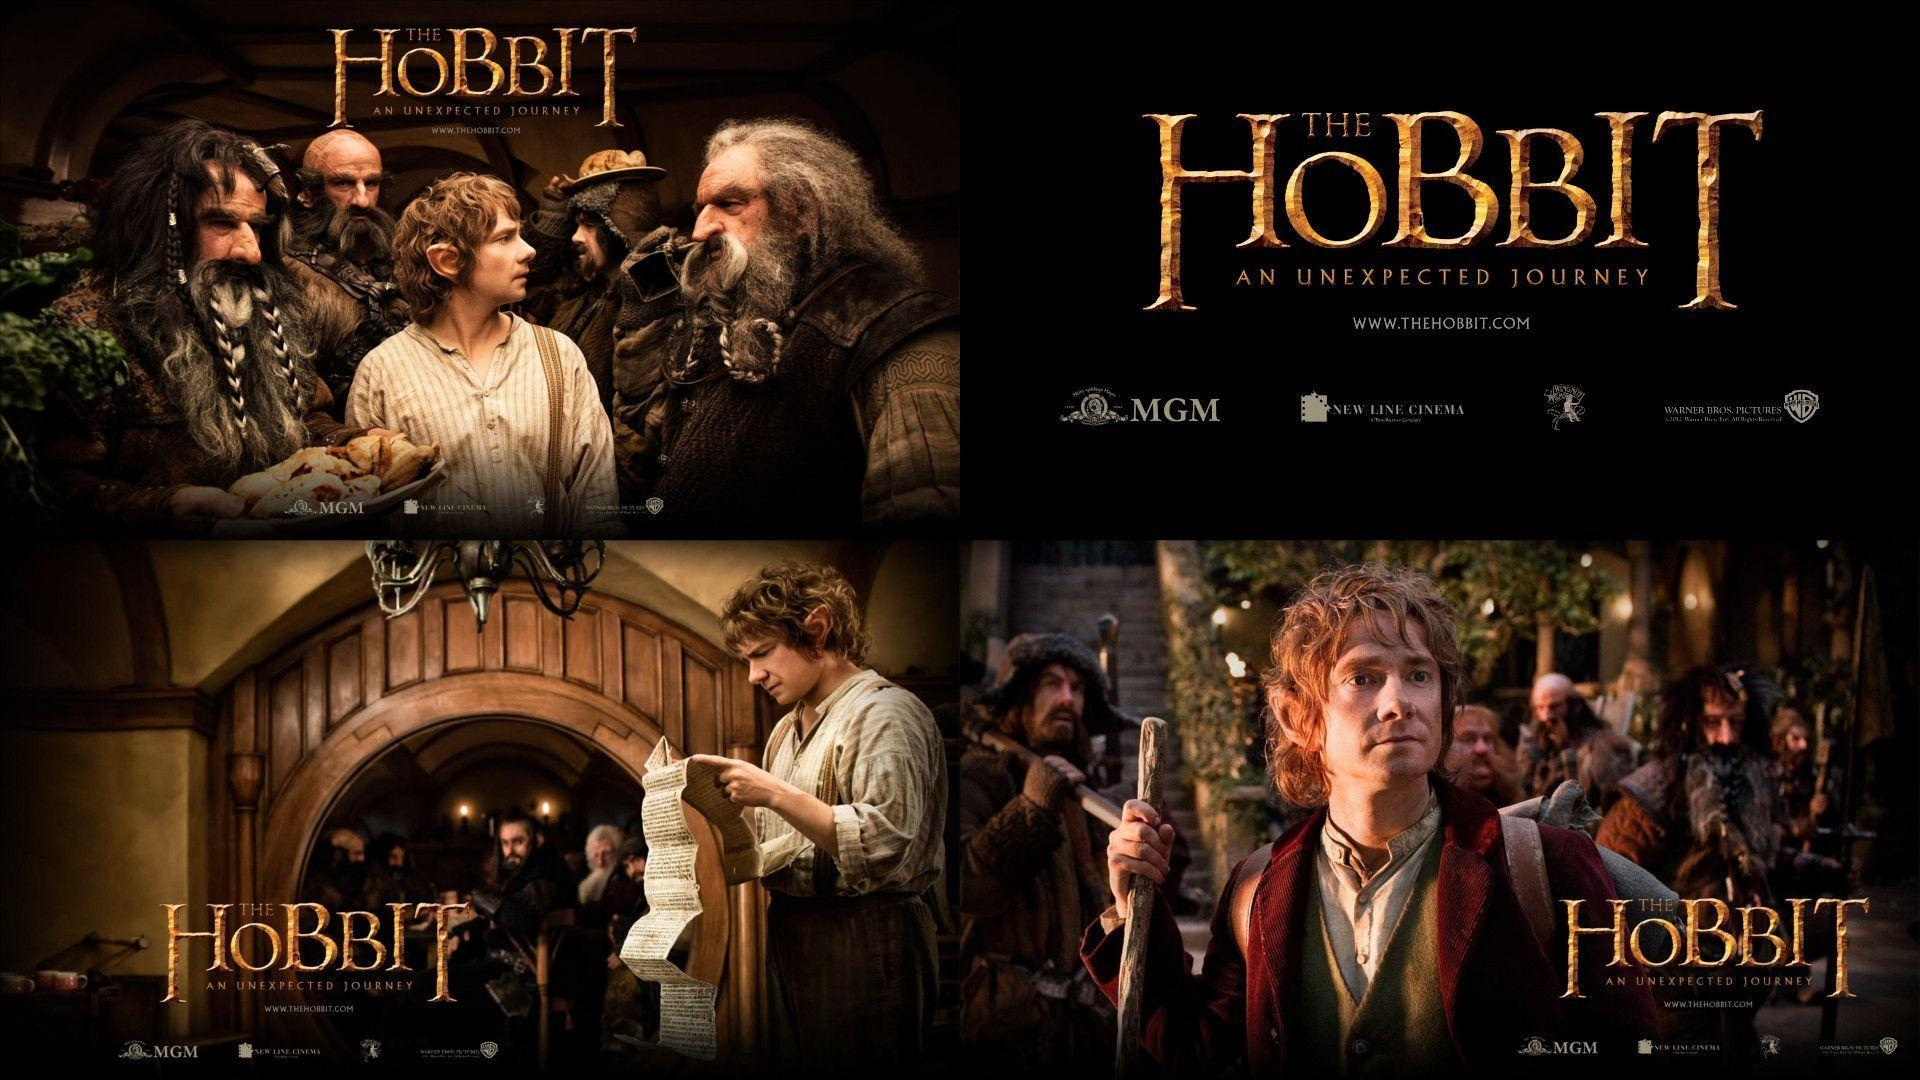 The Hobbit: An Unexpected Journey wallpaper - 808301